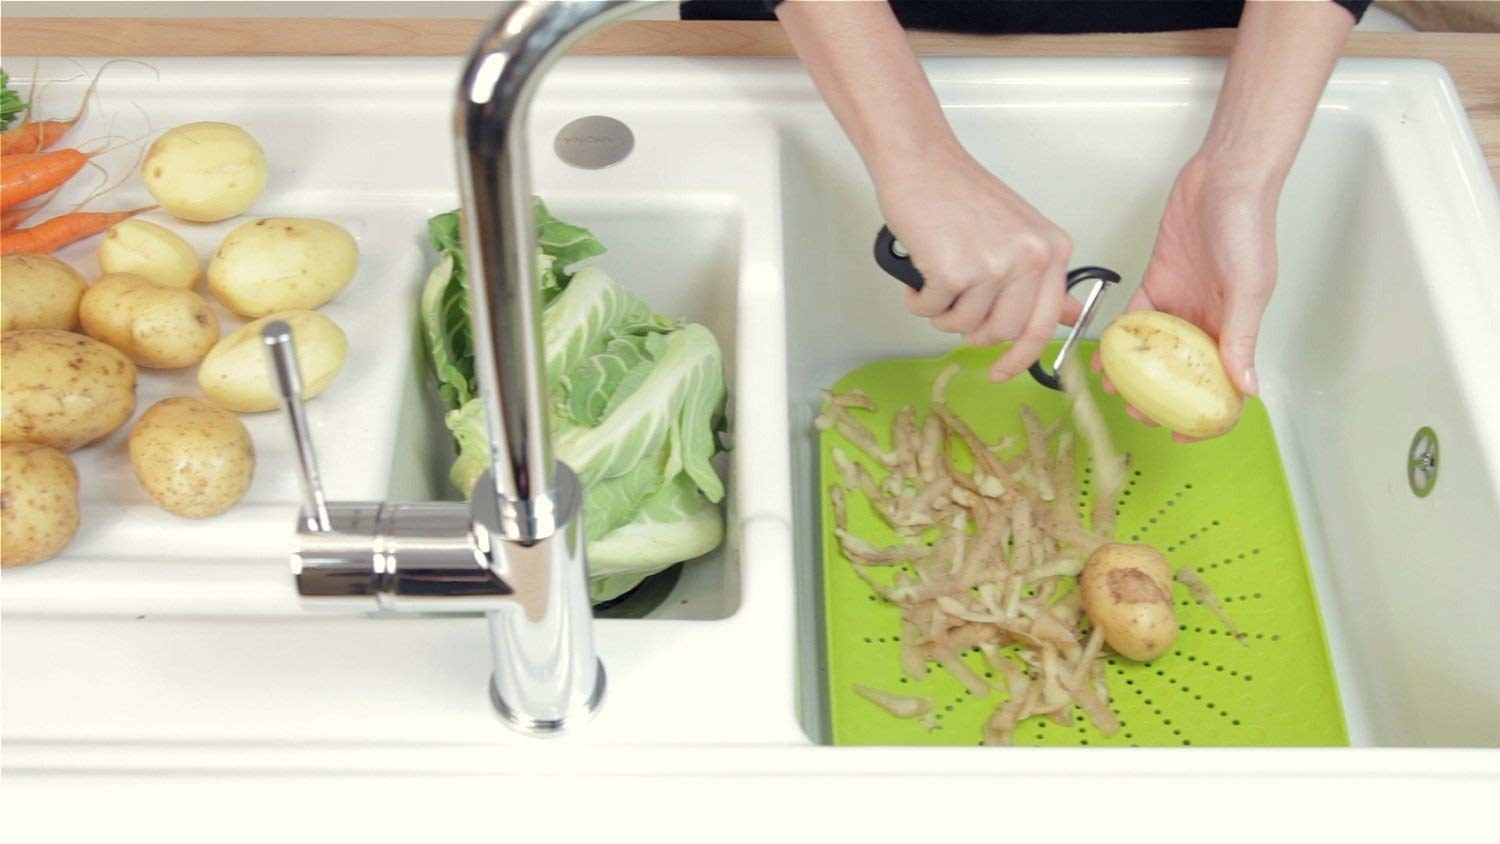 A model peeling potatoes over the green colander in a sink